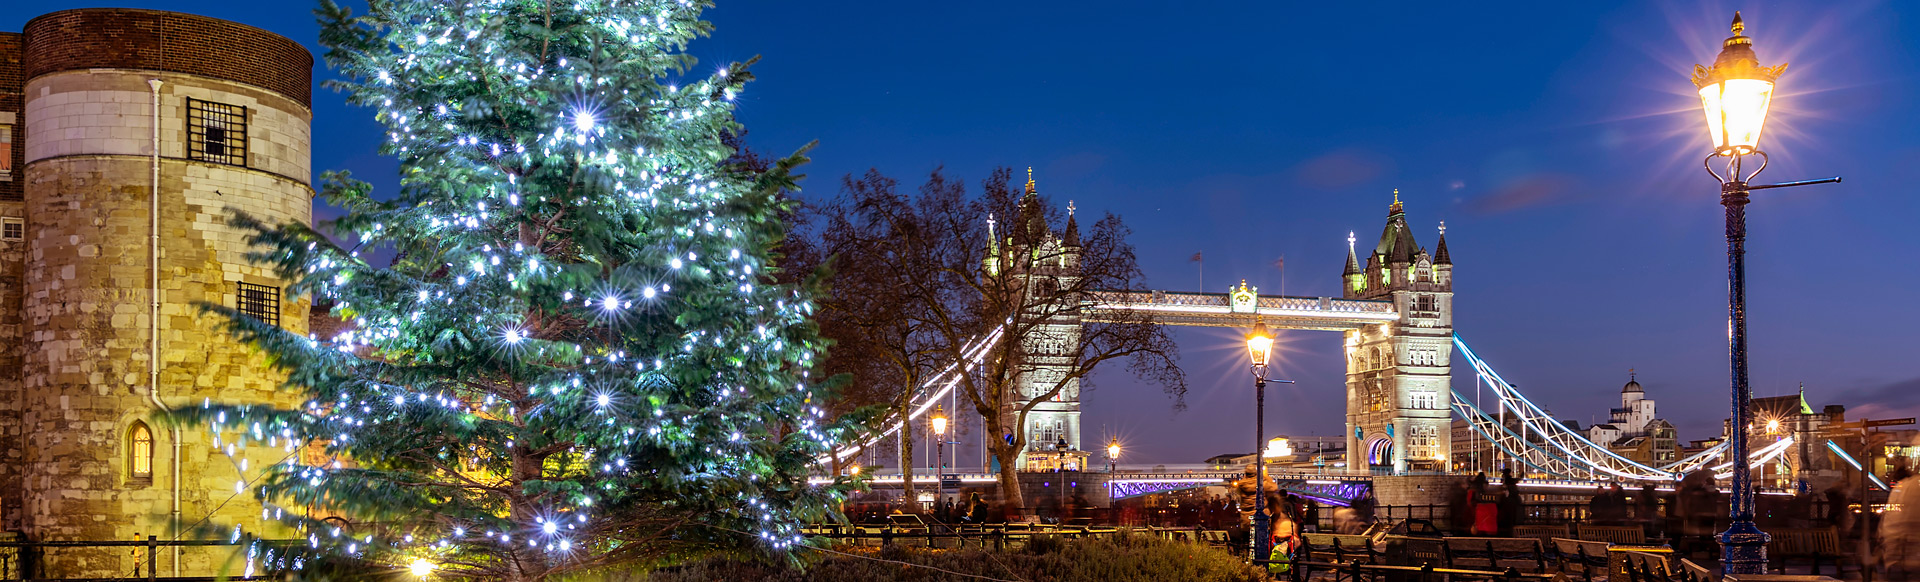 Christmas Packages London 2020 Christmas in London 2020   What's On   visitlondon.com